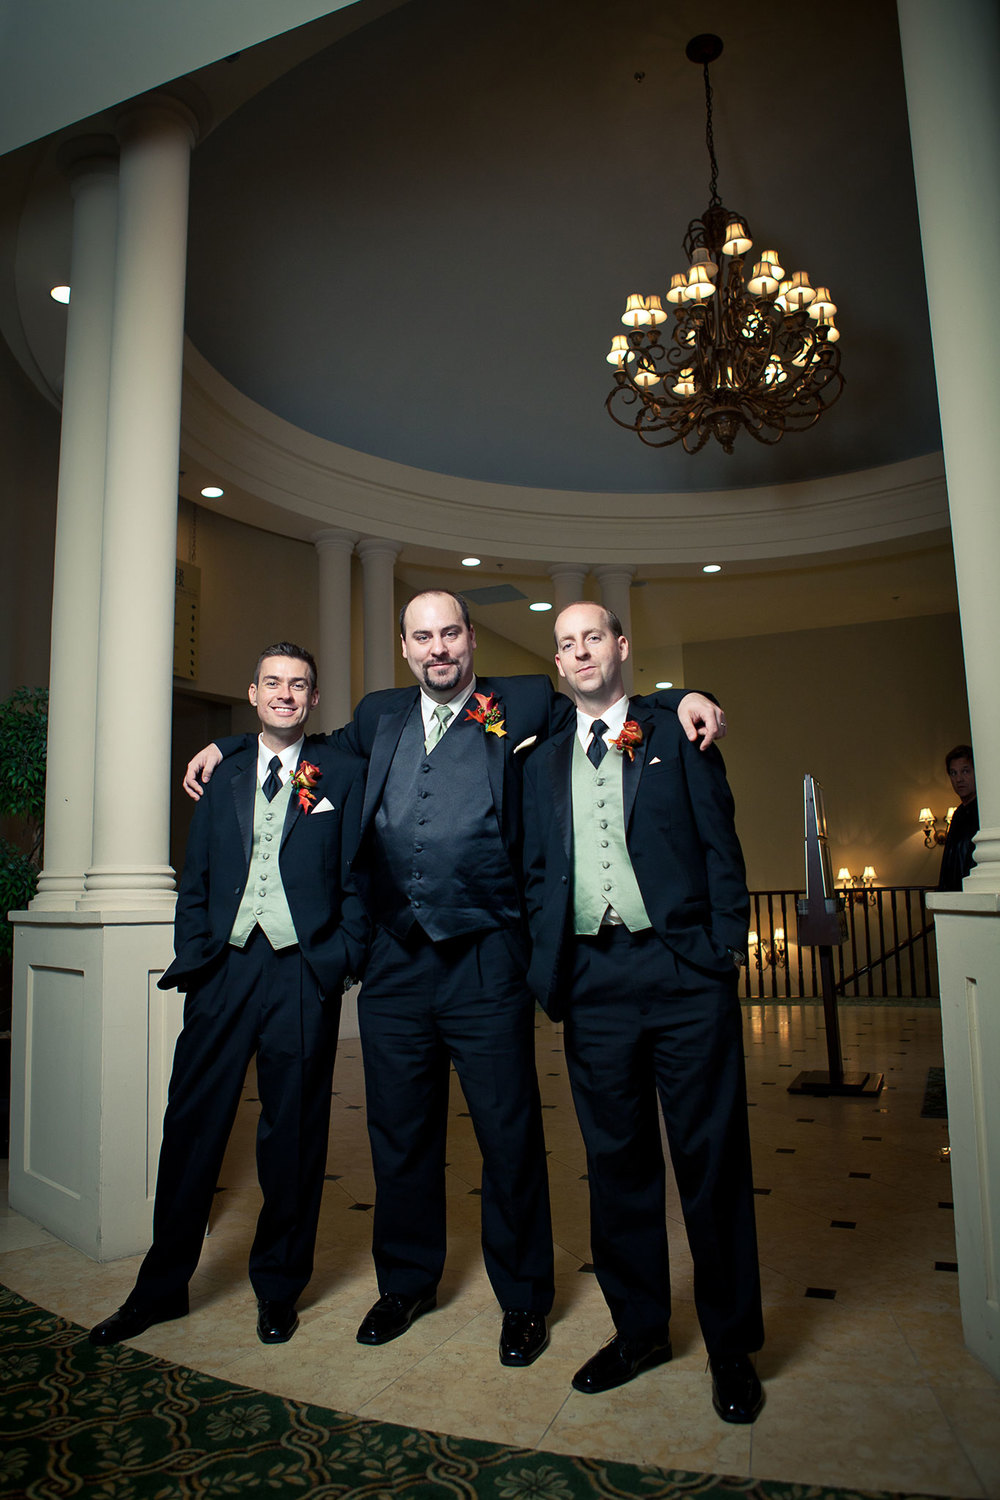 wedding-photographer-toronto-canada-shayne-gray_4294.jpg